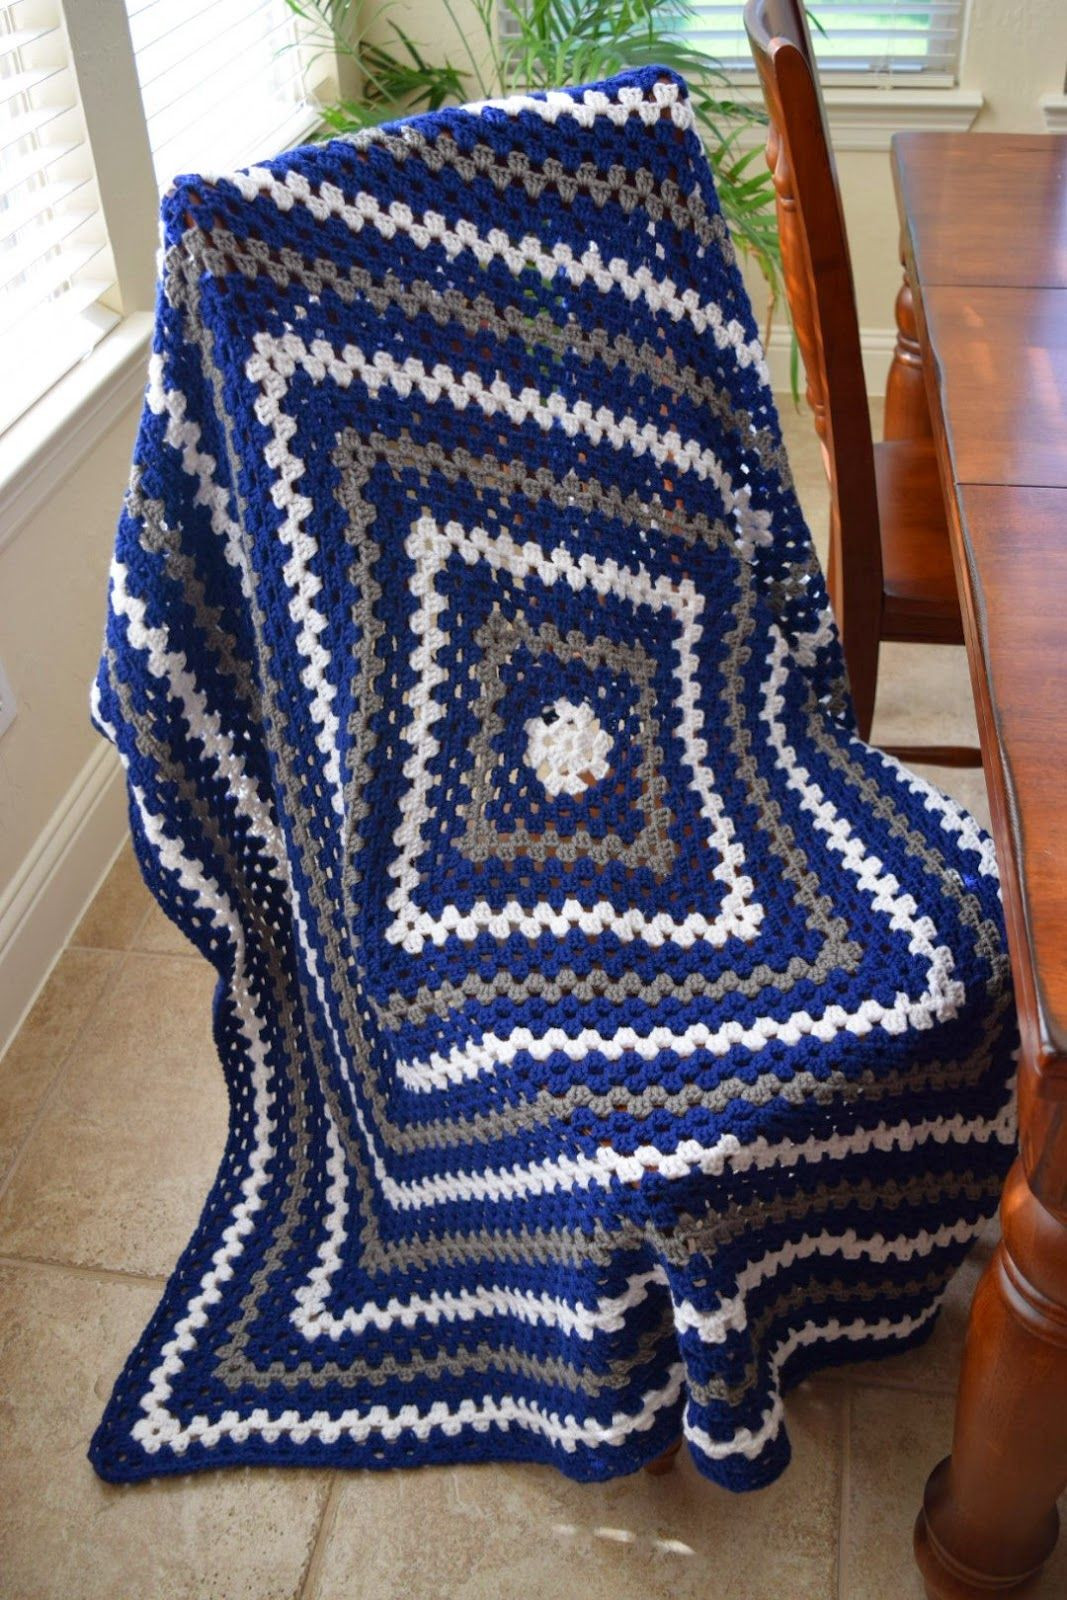 Awesome Crochet Granny Square Lap Blanket In Dallas Cowboys Colors Granny Square Afghan Pattern Beginners Of Superb 24 Pictures Granny Square Afghan Pattern Beginners